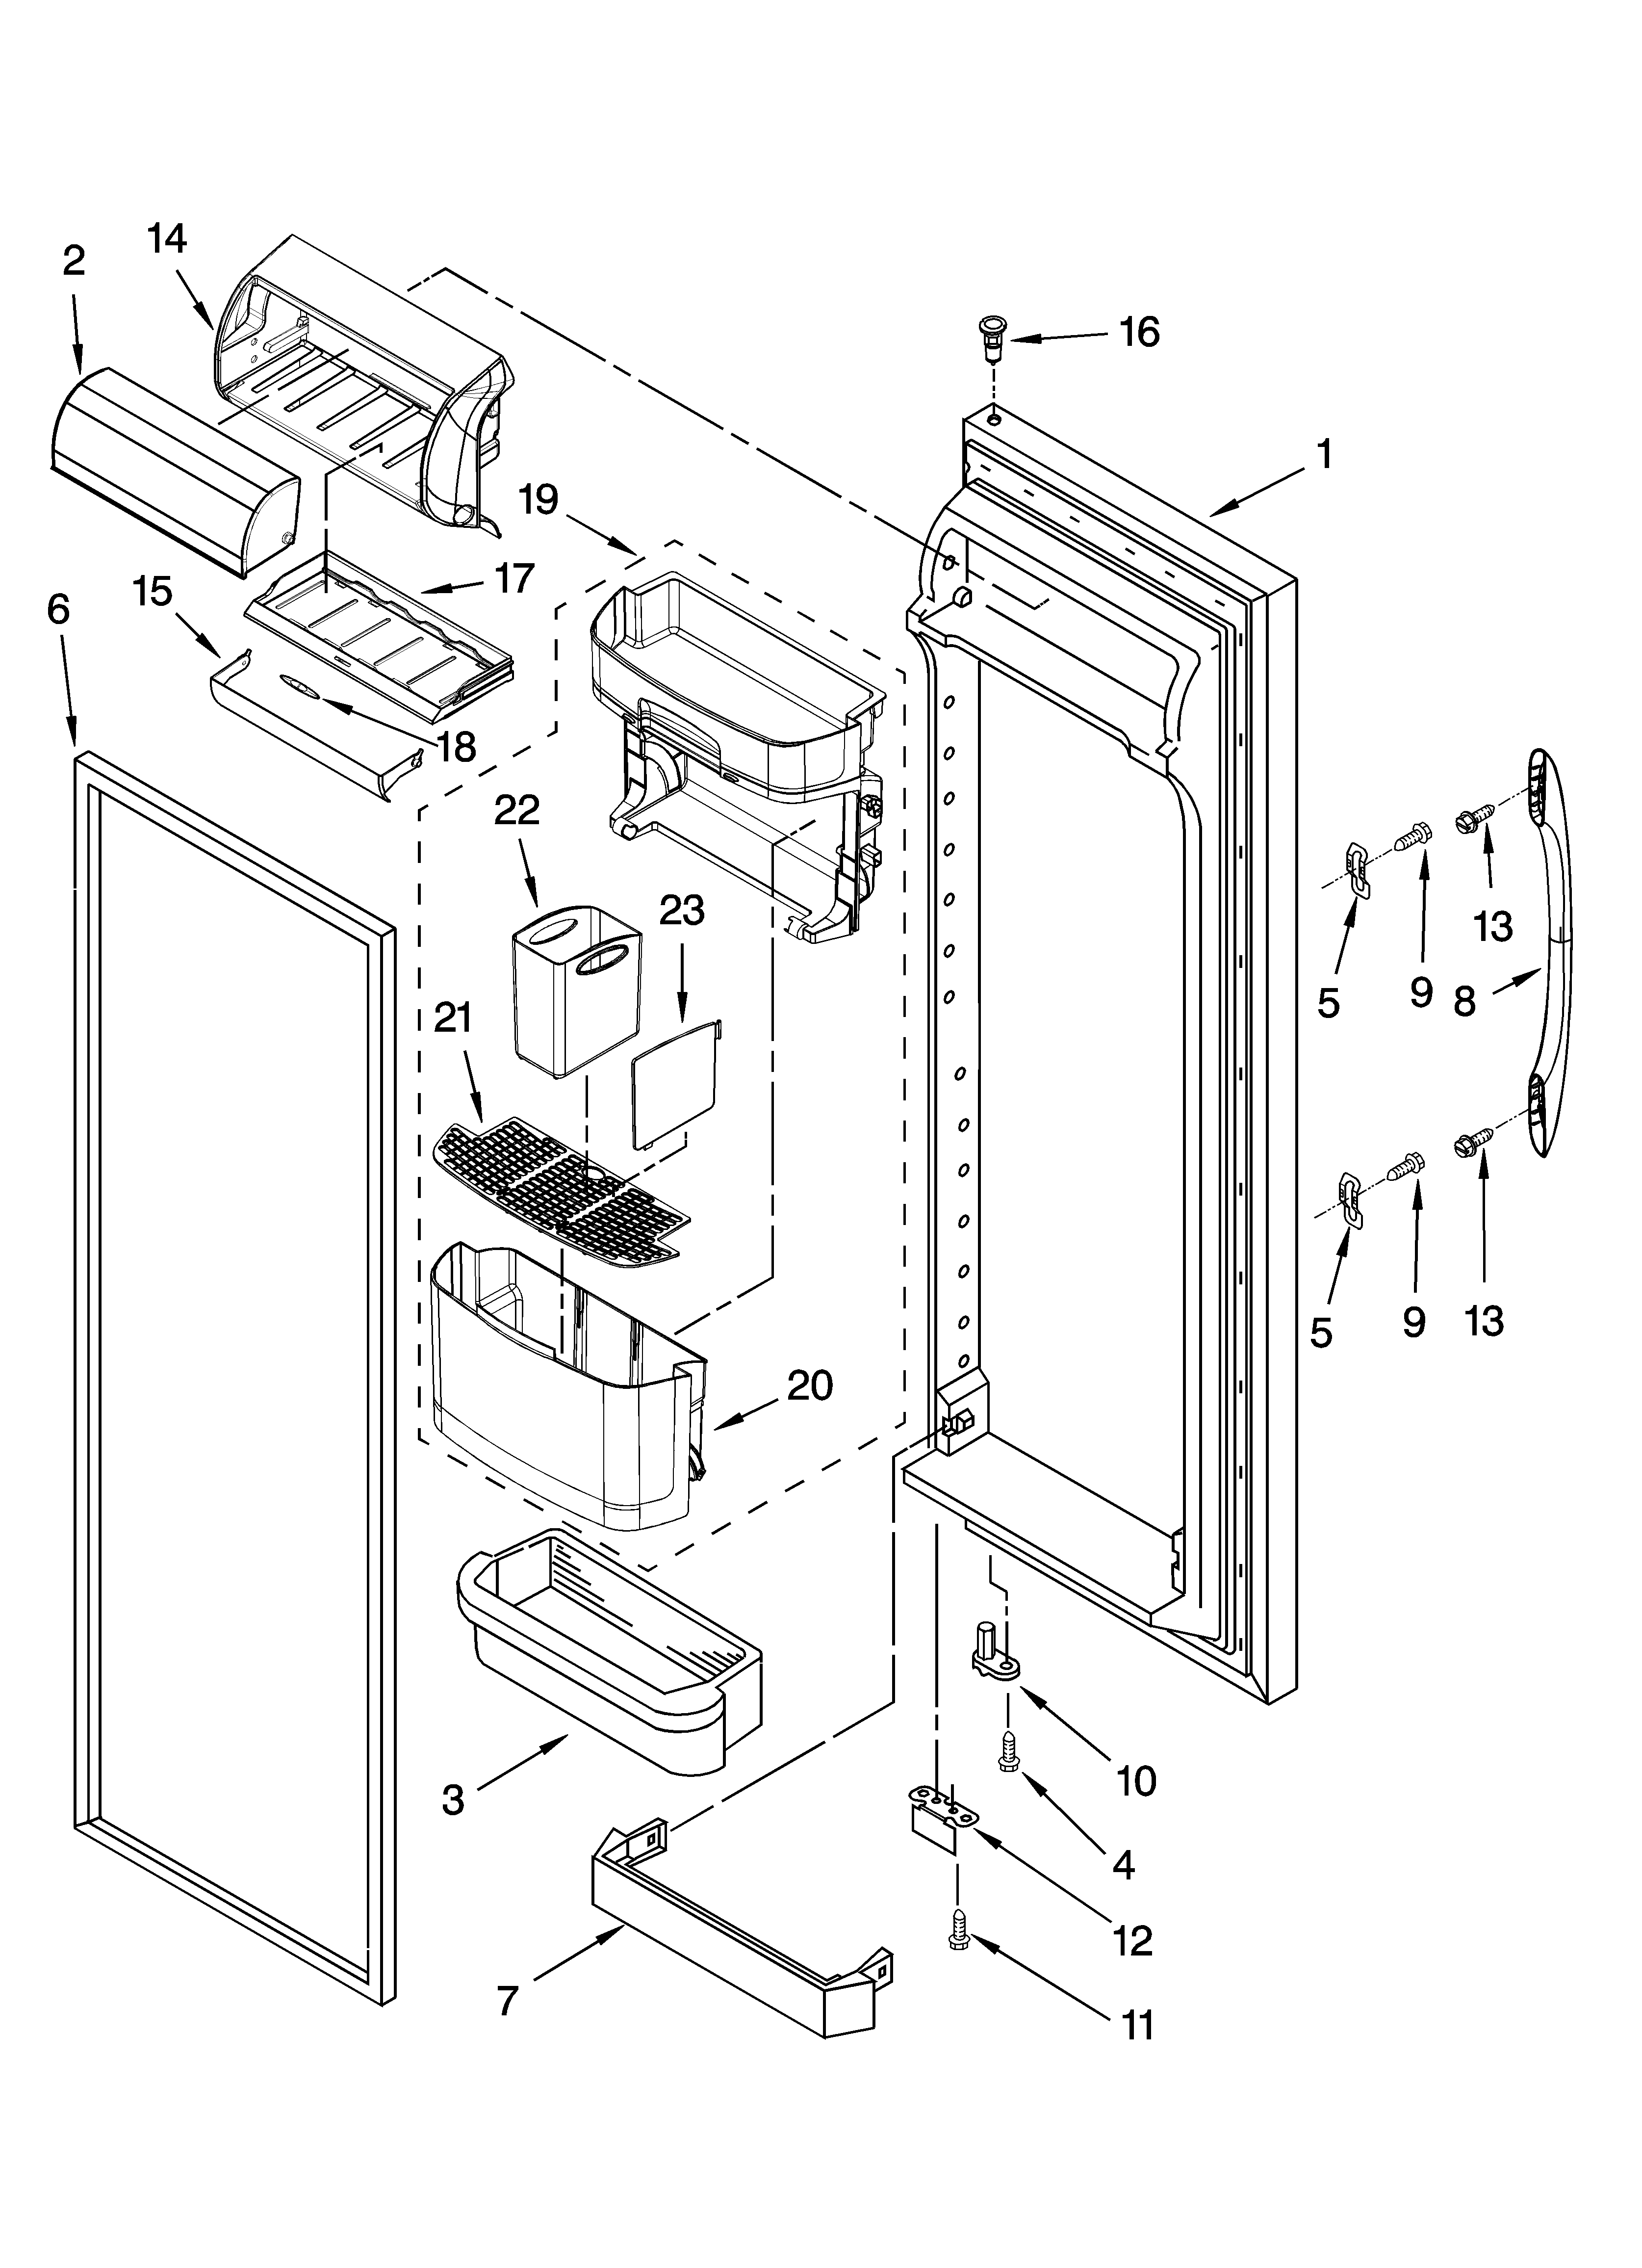 Kenmore Side By Side Refrigerator Wiring Diagram from static-cdn.imageservice.cloud